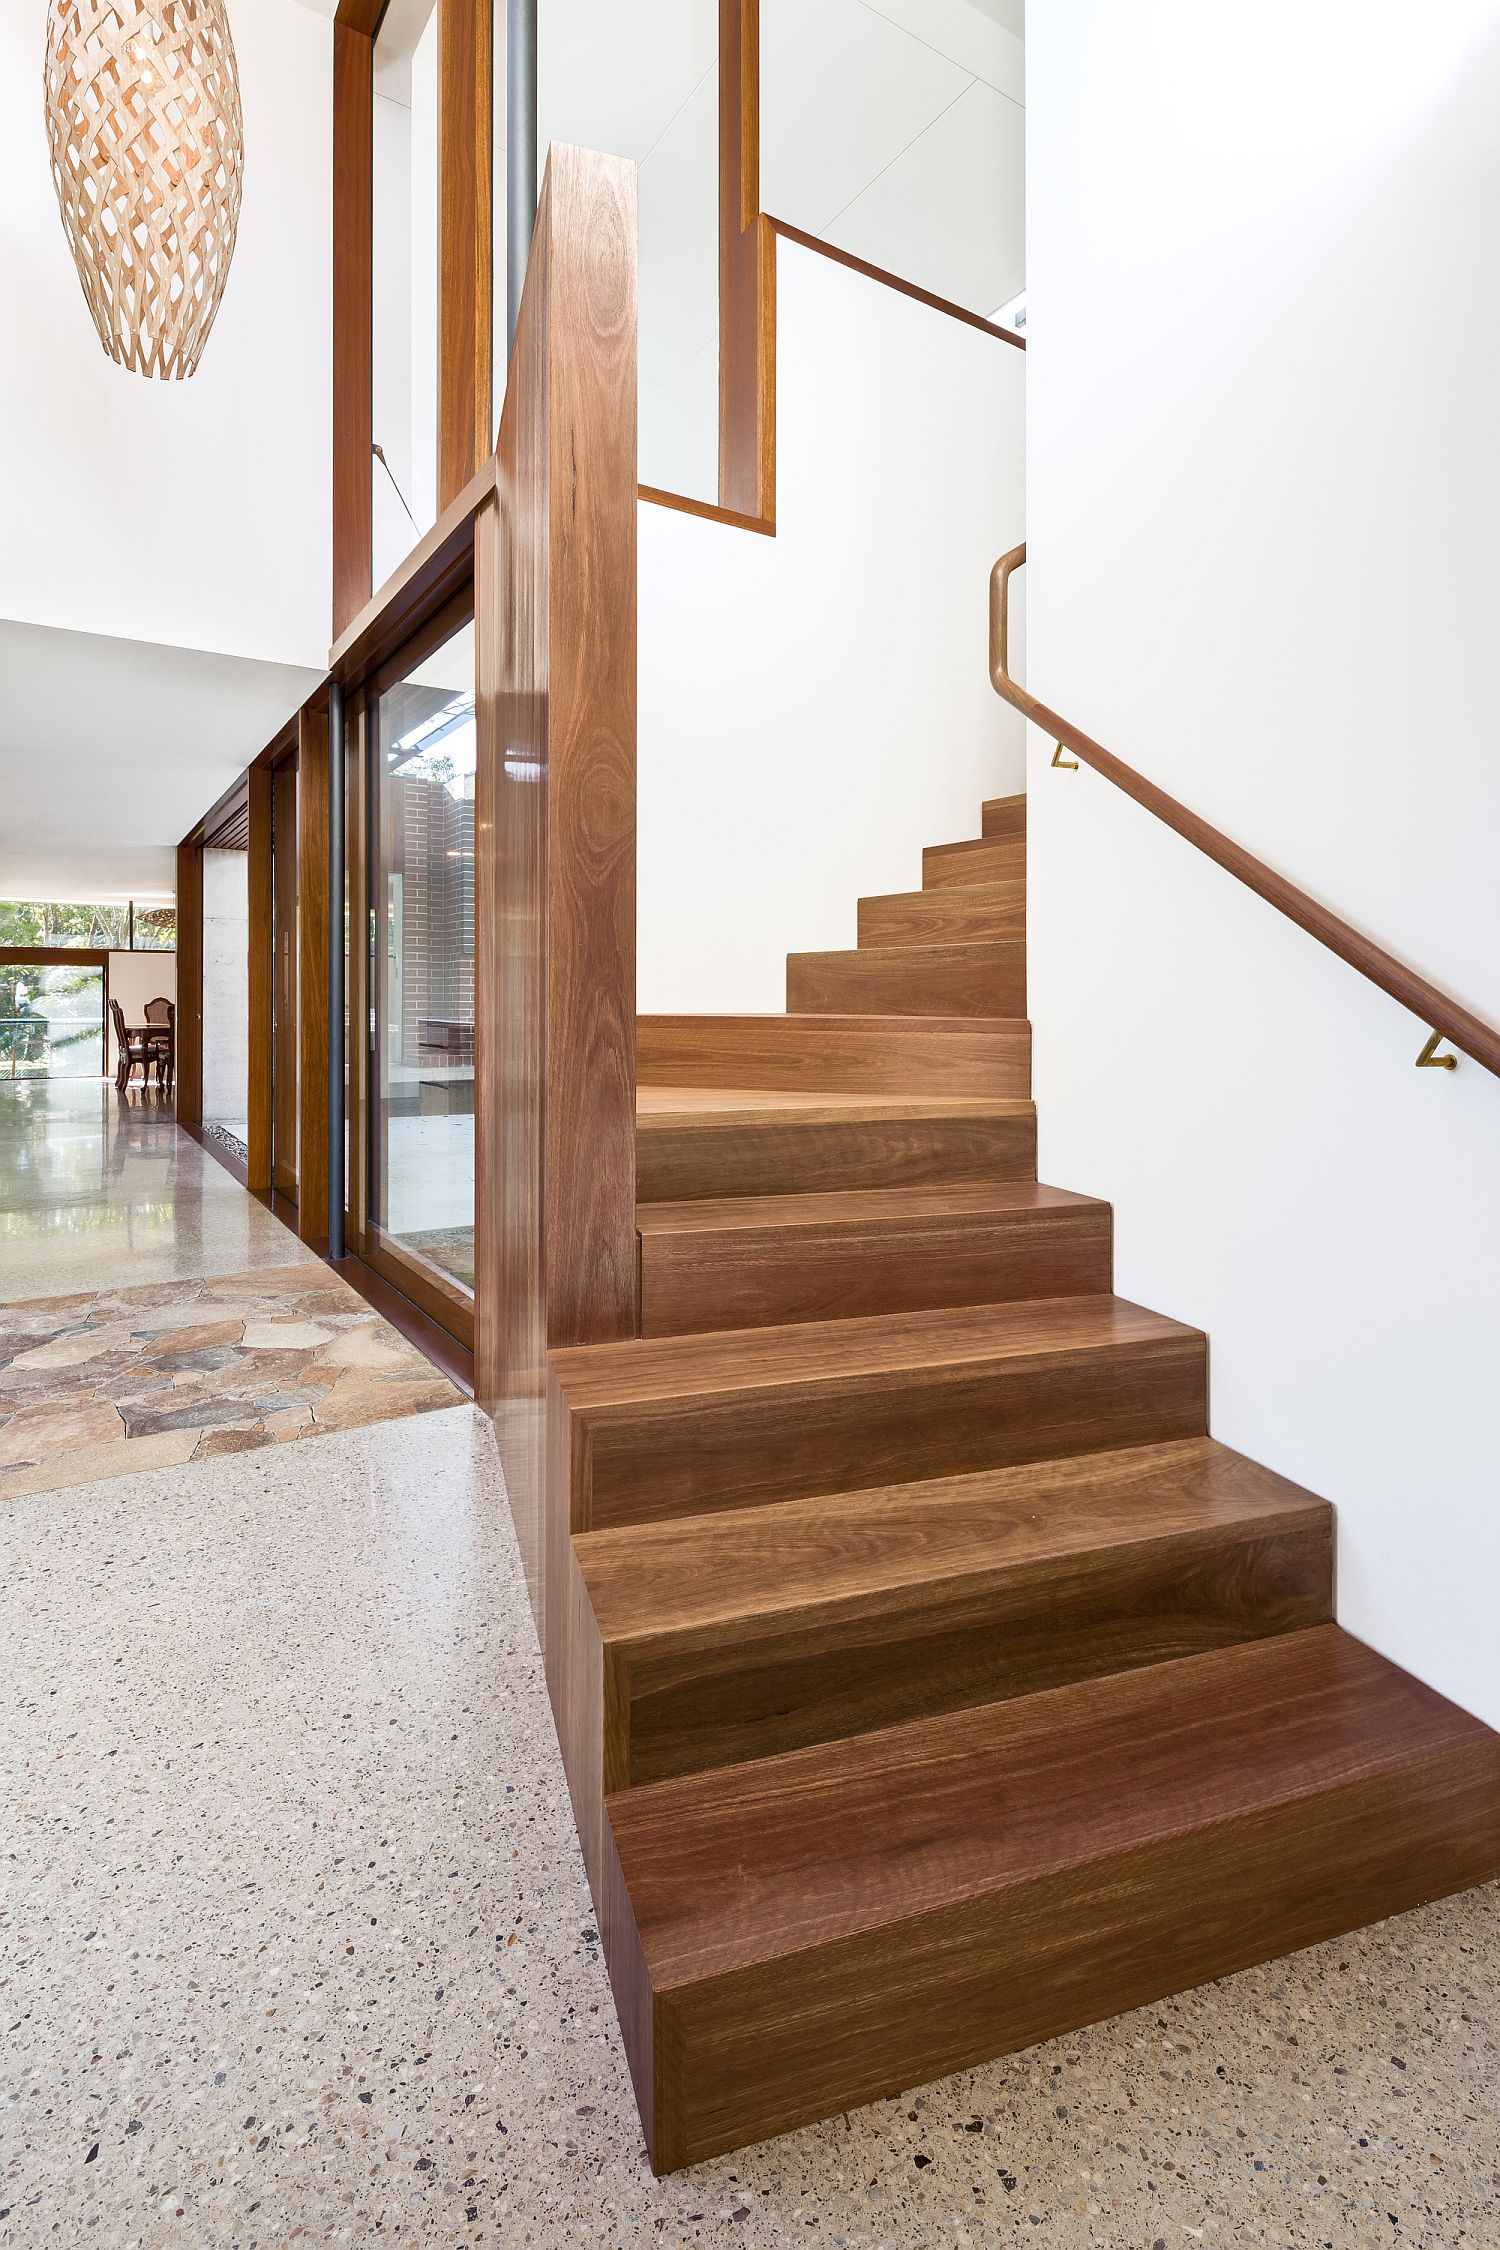 Wooden stairway connects the lower living area with the bedrooms